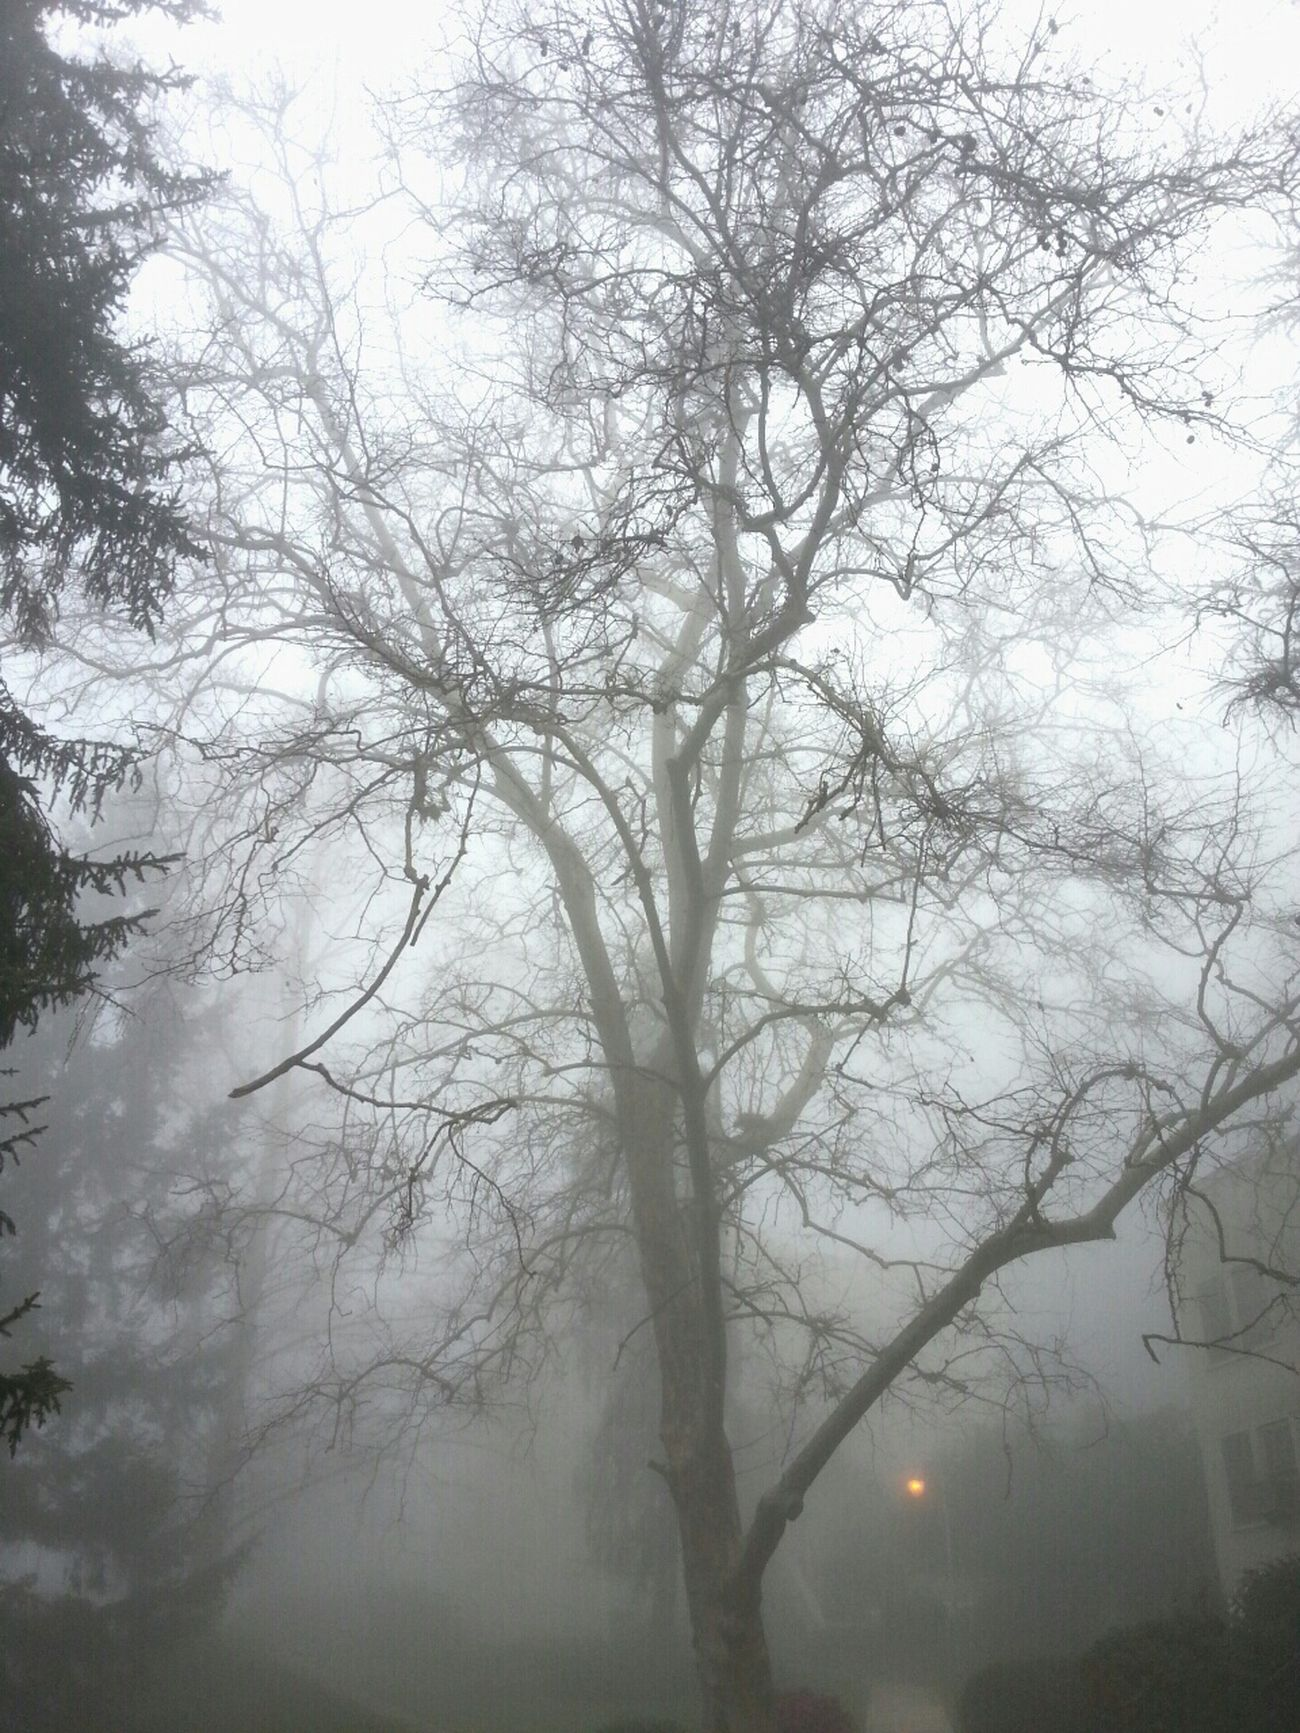 (Tree - Leaves ) + thick fog = Creepiness Early Class Foggy Morning Good Morning World!